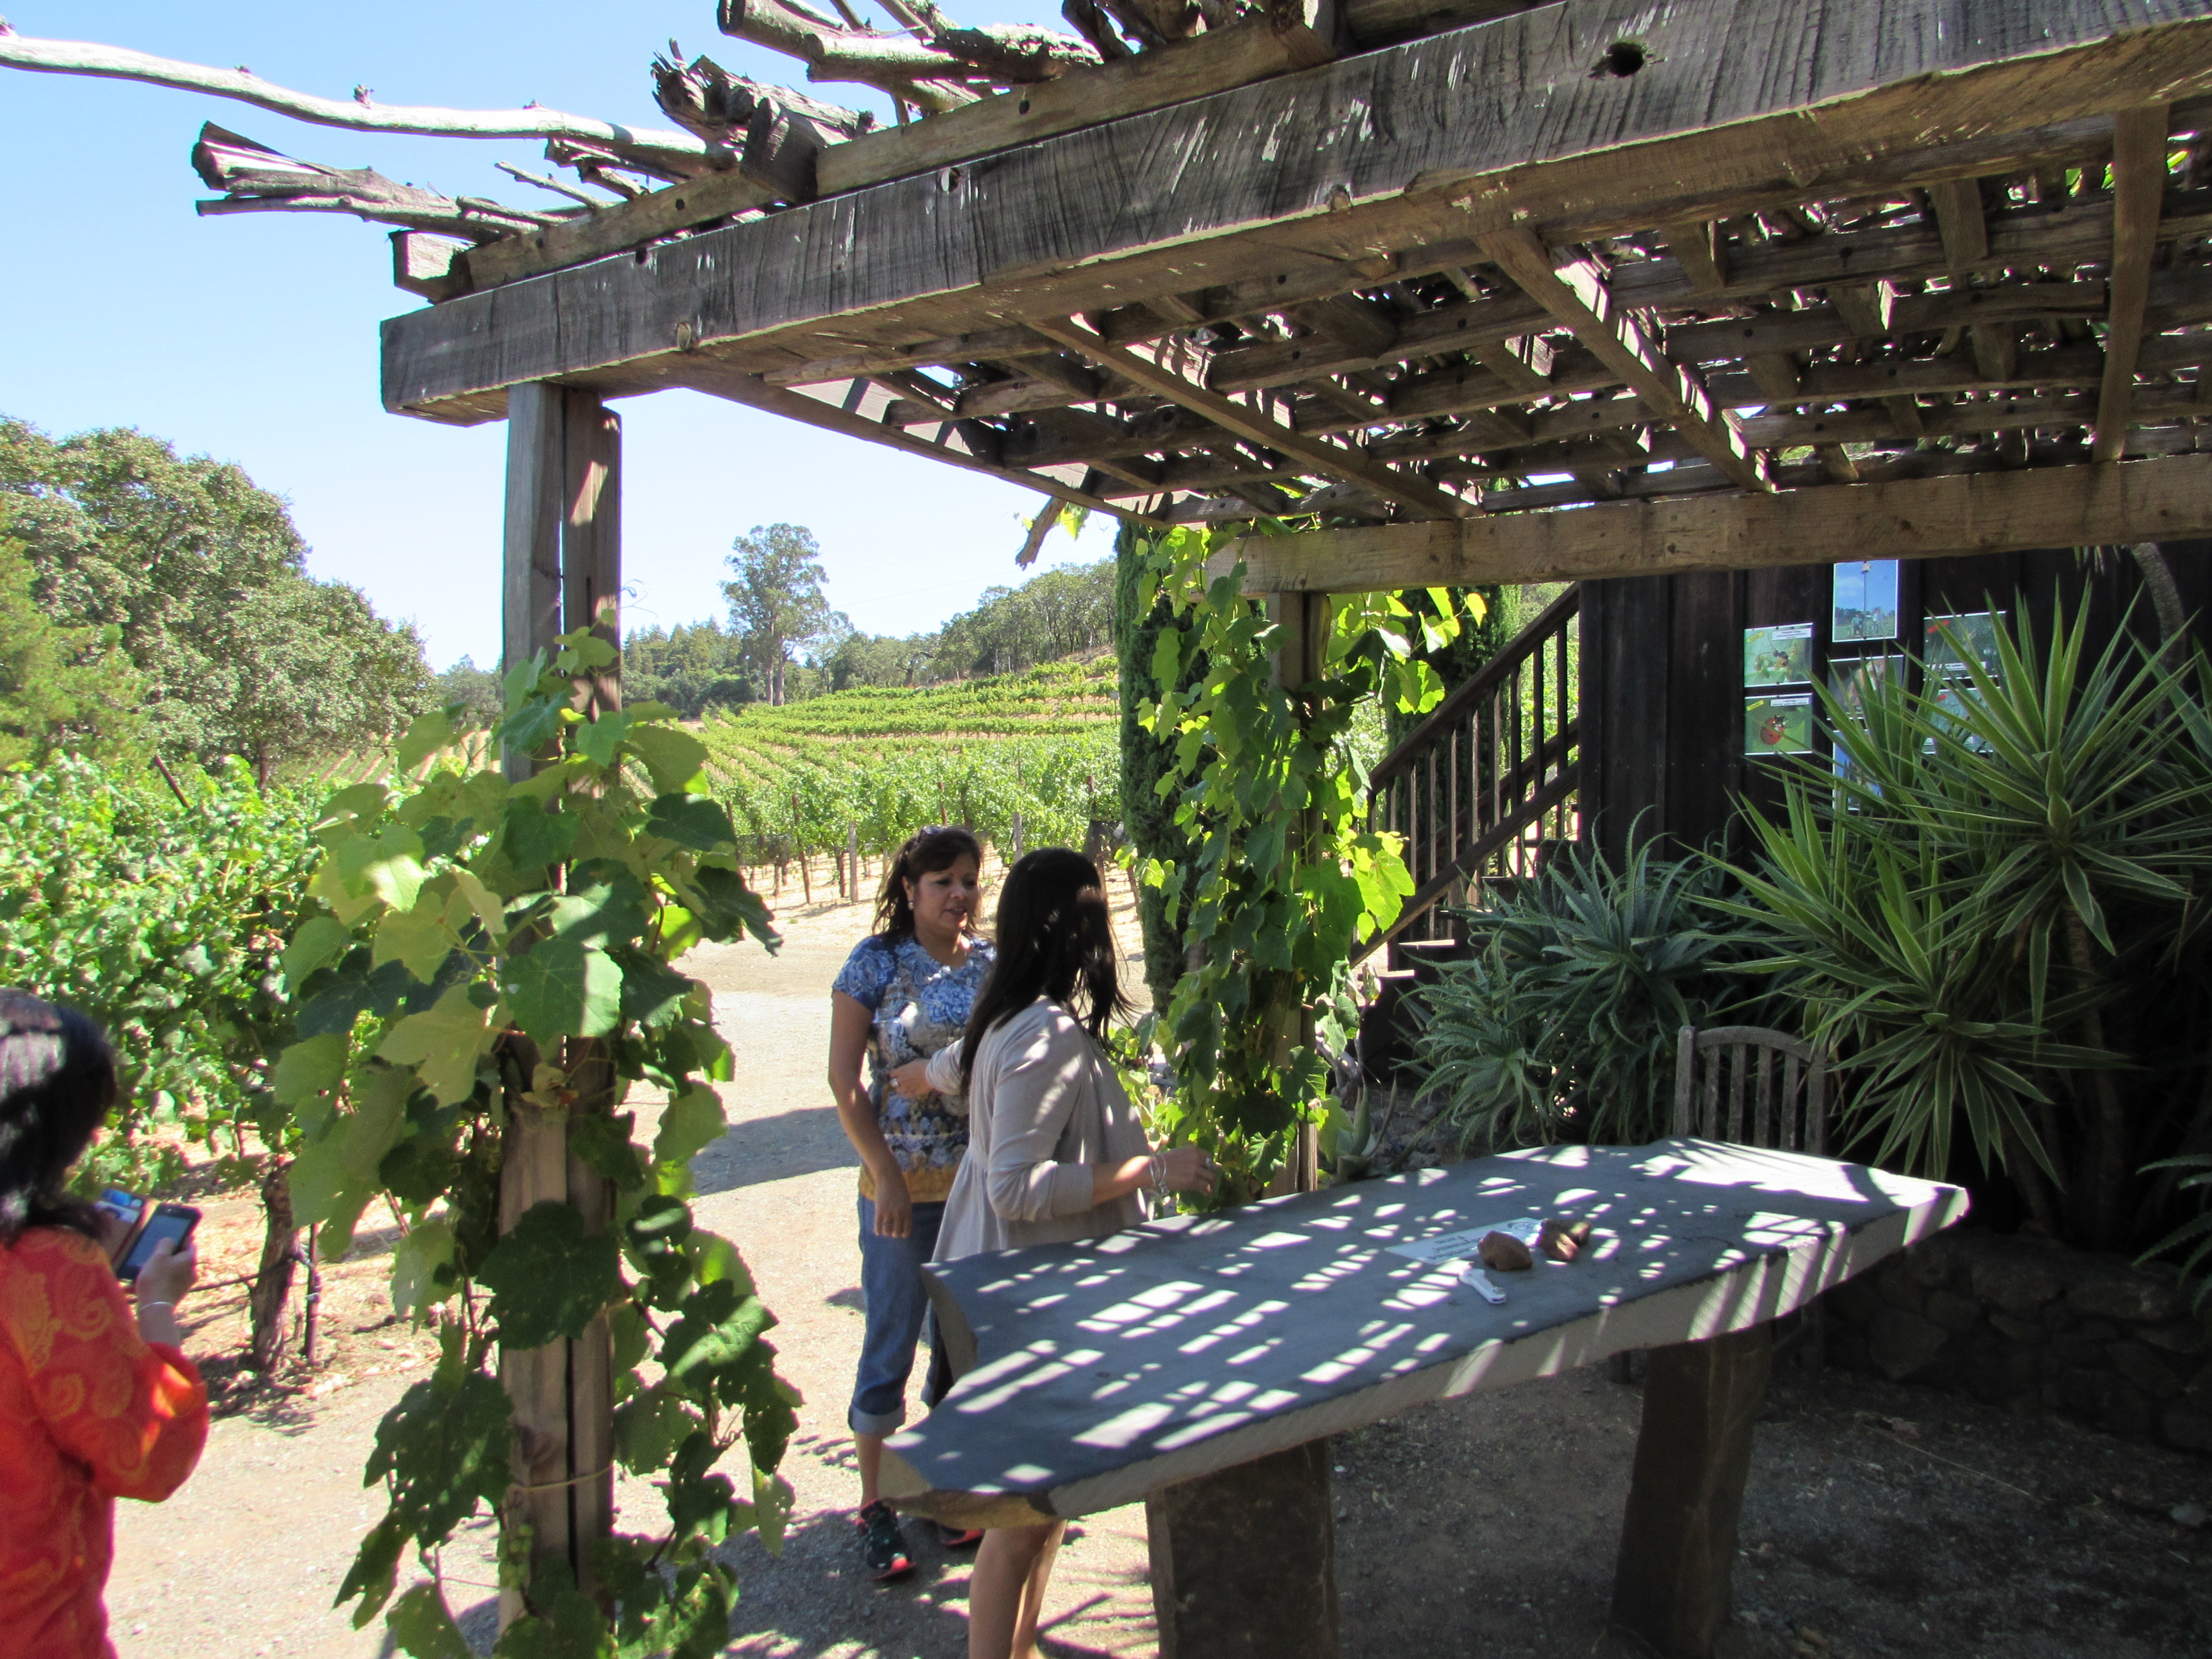 Wine Tasting in the vineyards in Napa California Benziger